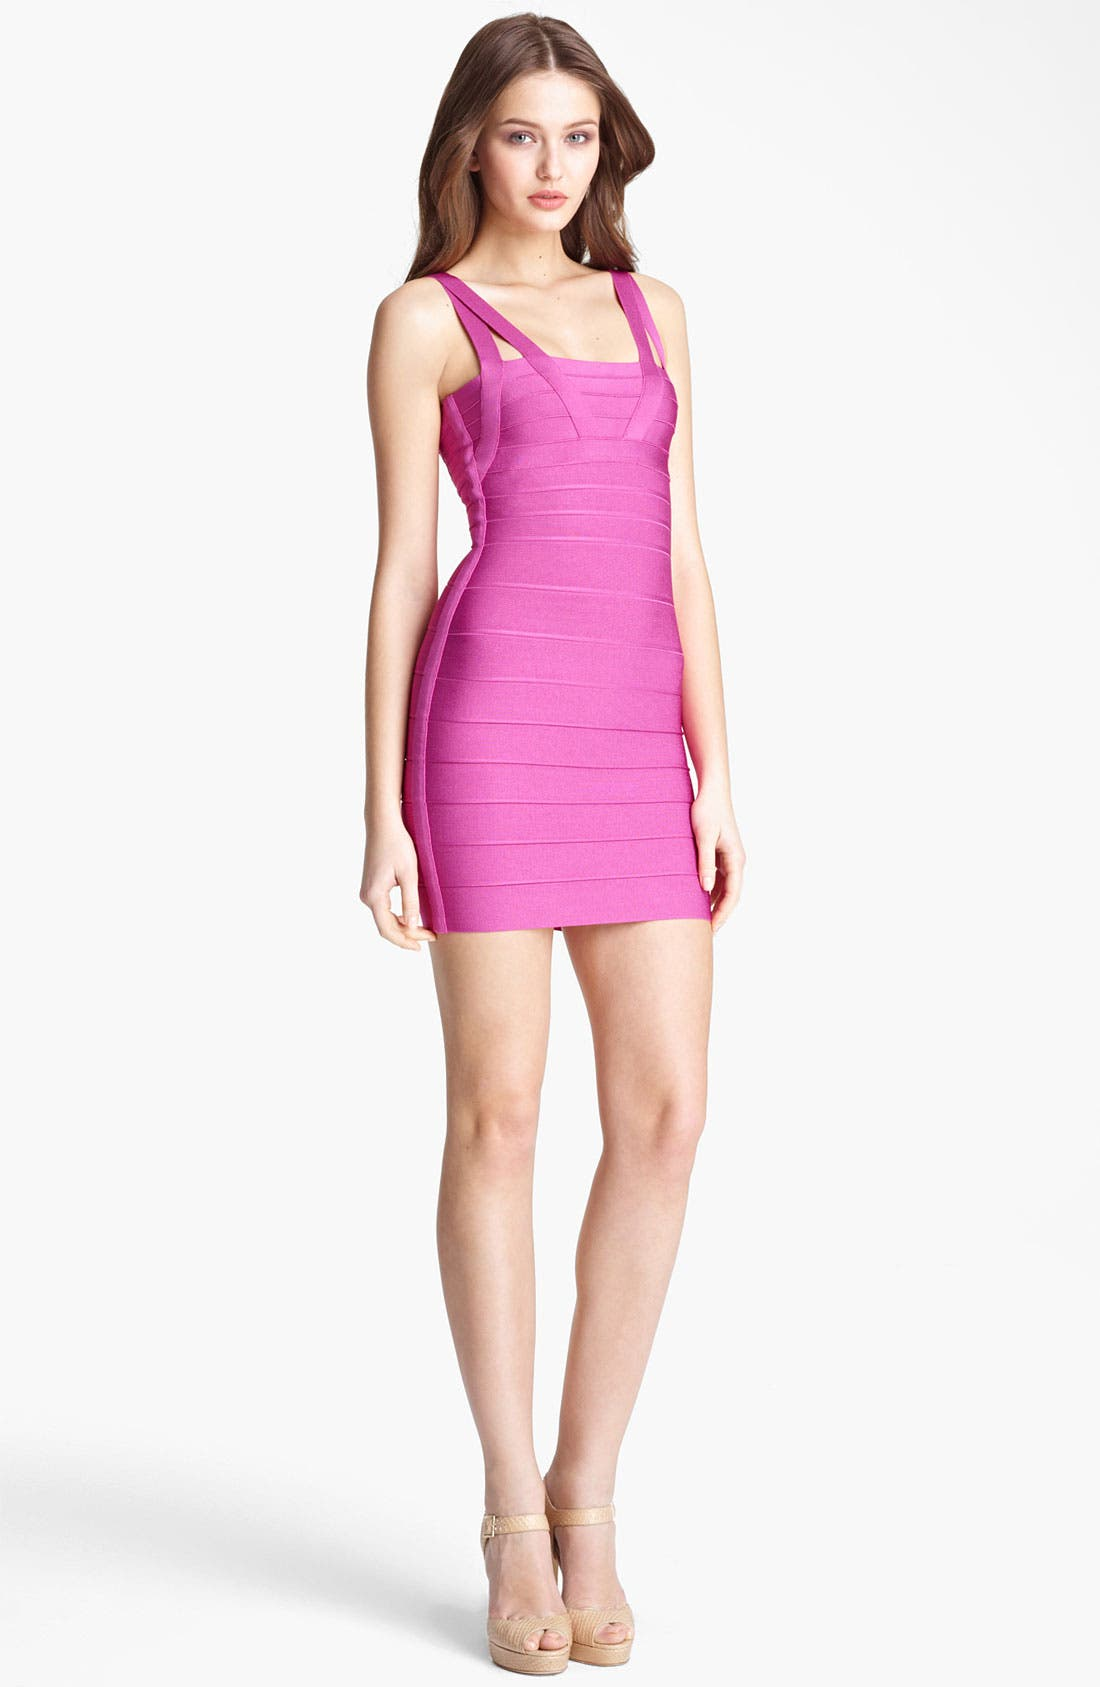 Main Image - CRISS CROSS DRESS WITH STRAPS